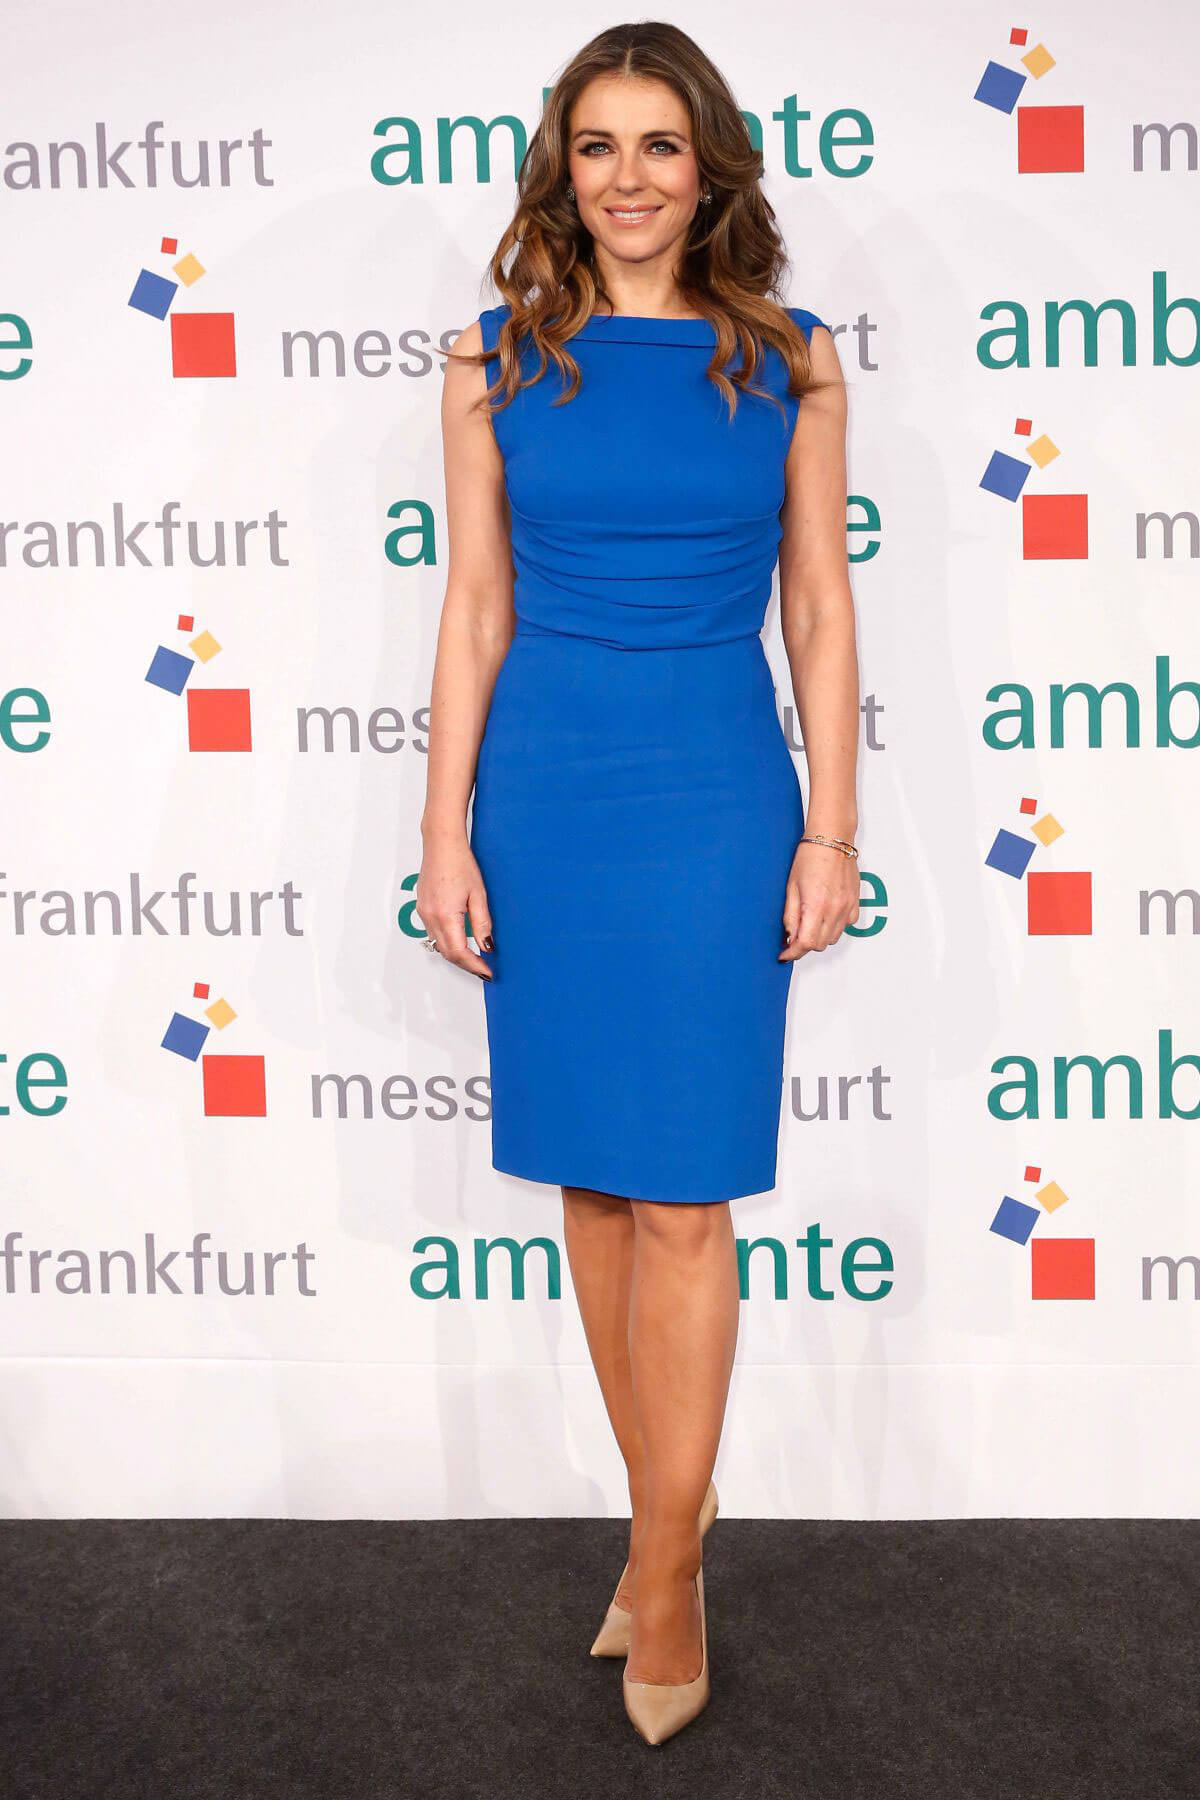 Elizabeth Hurley at Fair Ambiente in Frankfurt